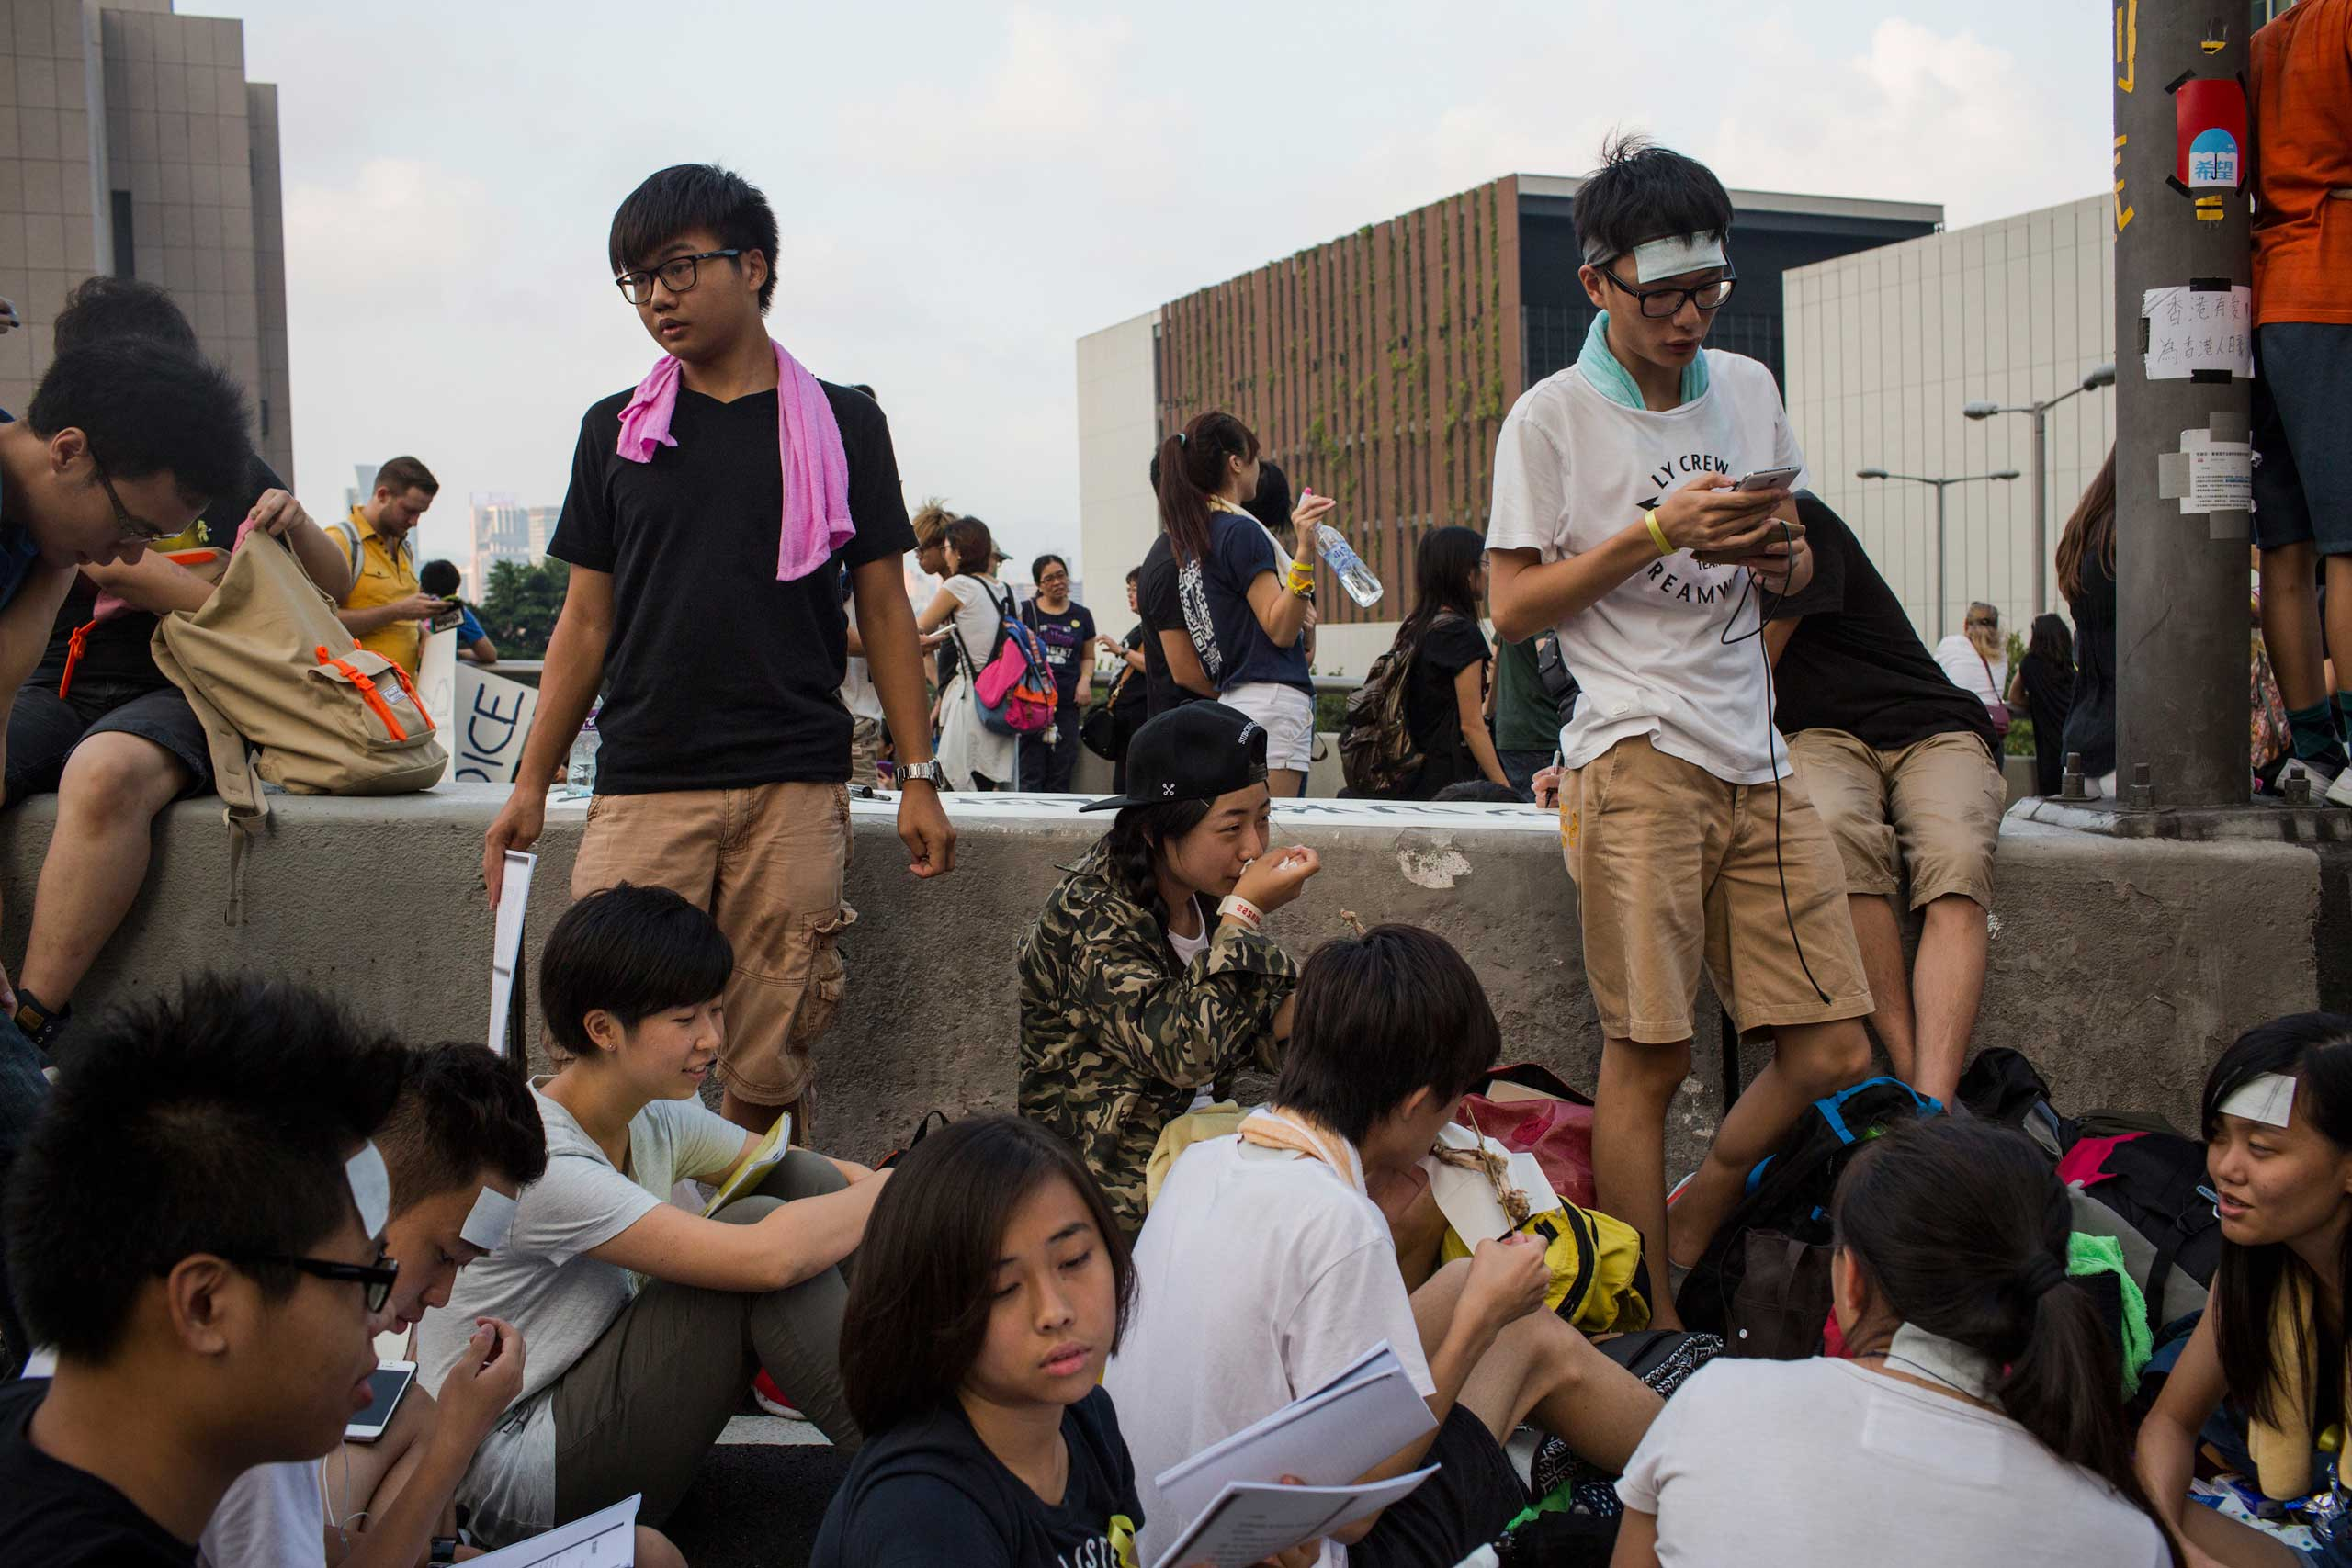 Students from various universities continue their protest in the streets of Hong Kong, Oct. 1, 2014.